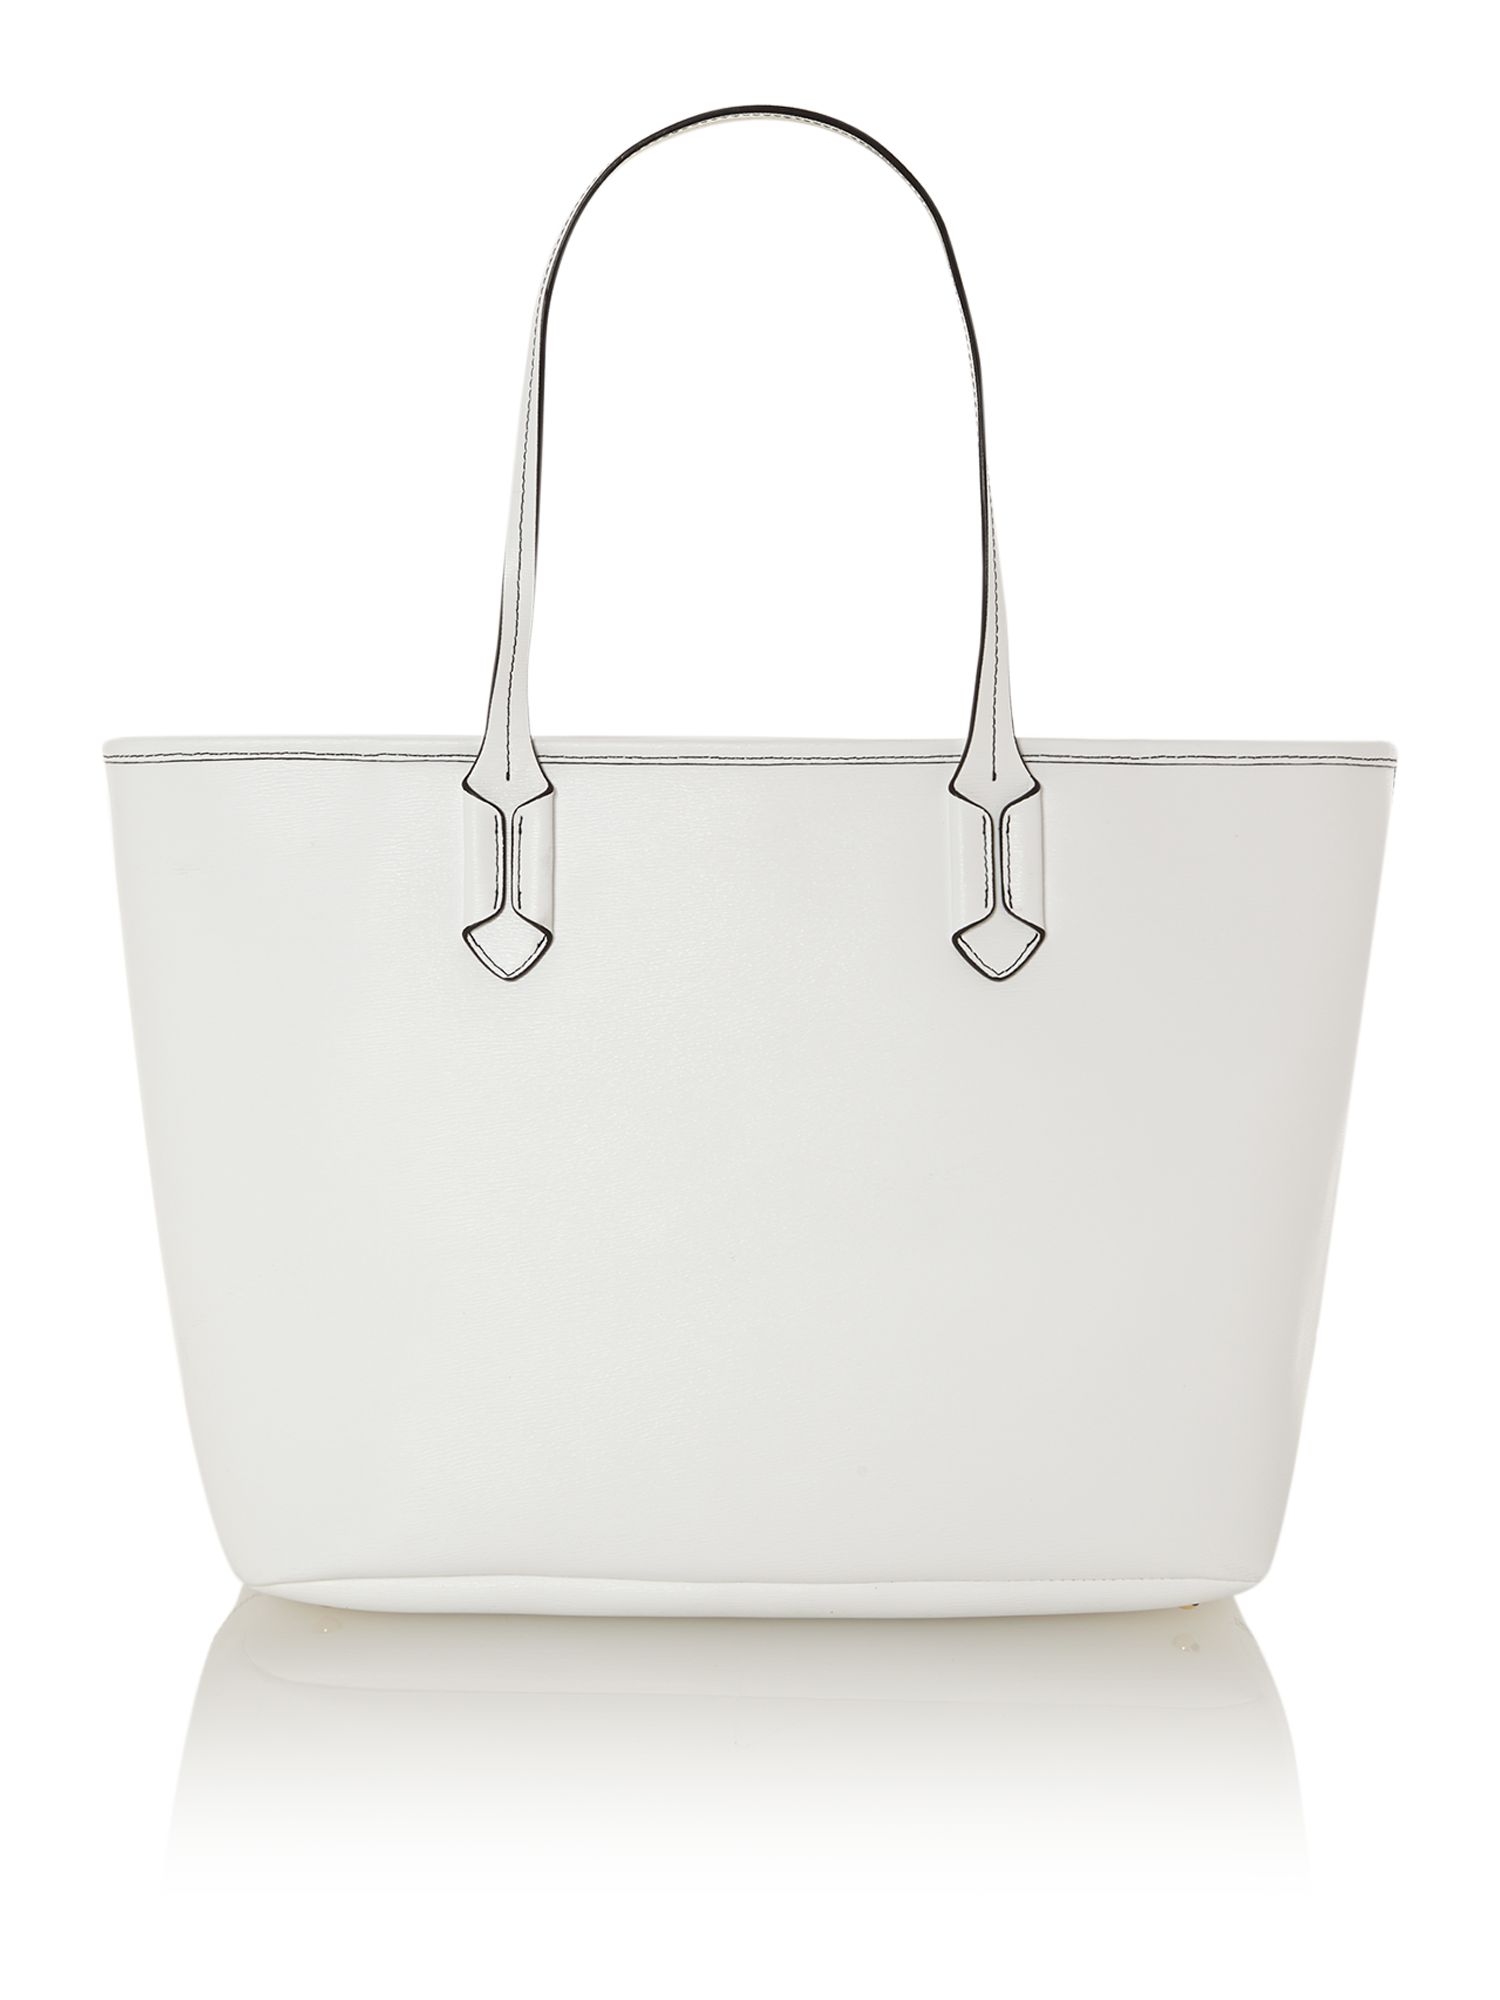 Tate white large tote bag